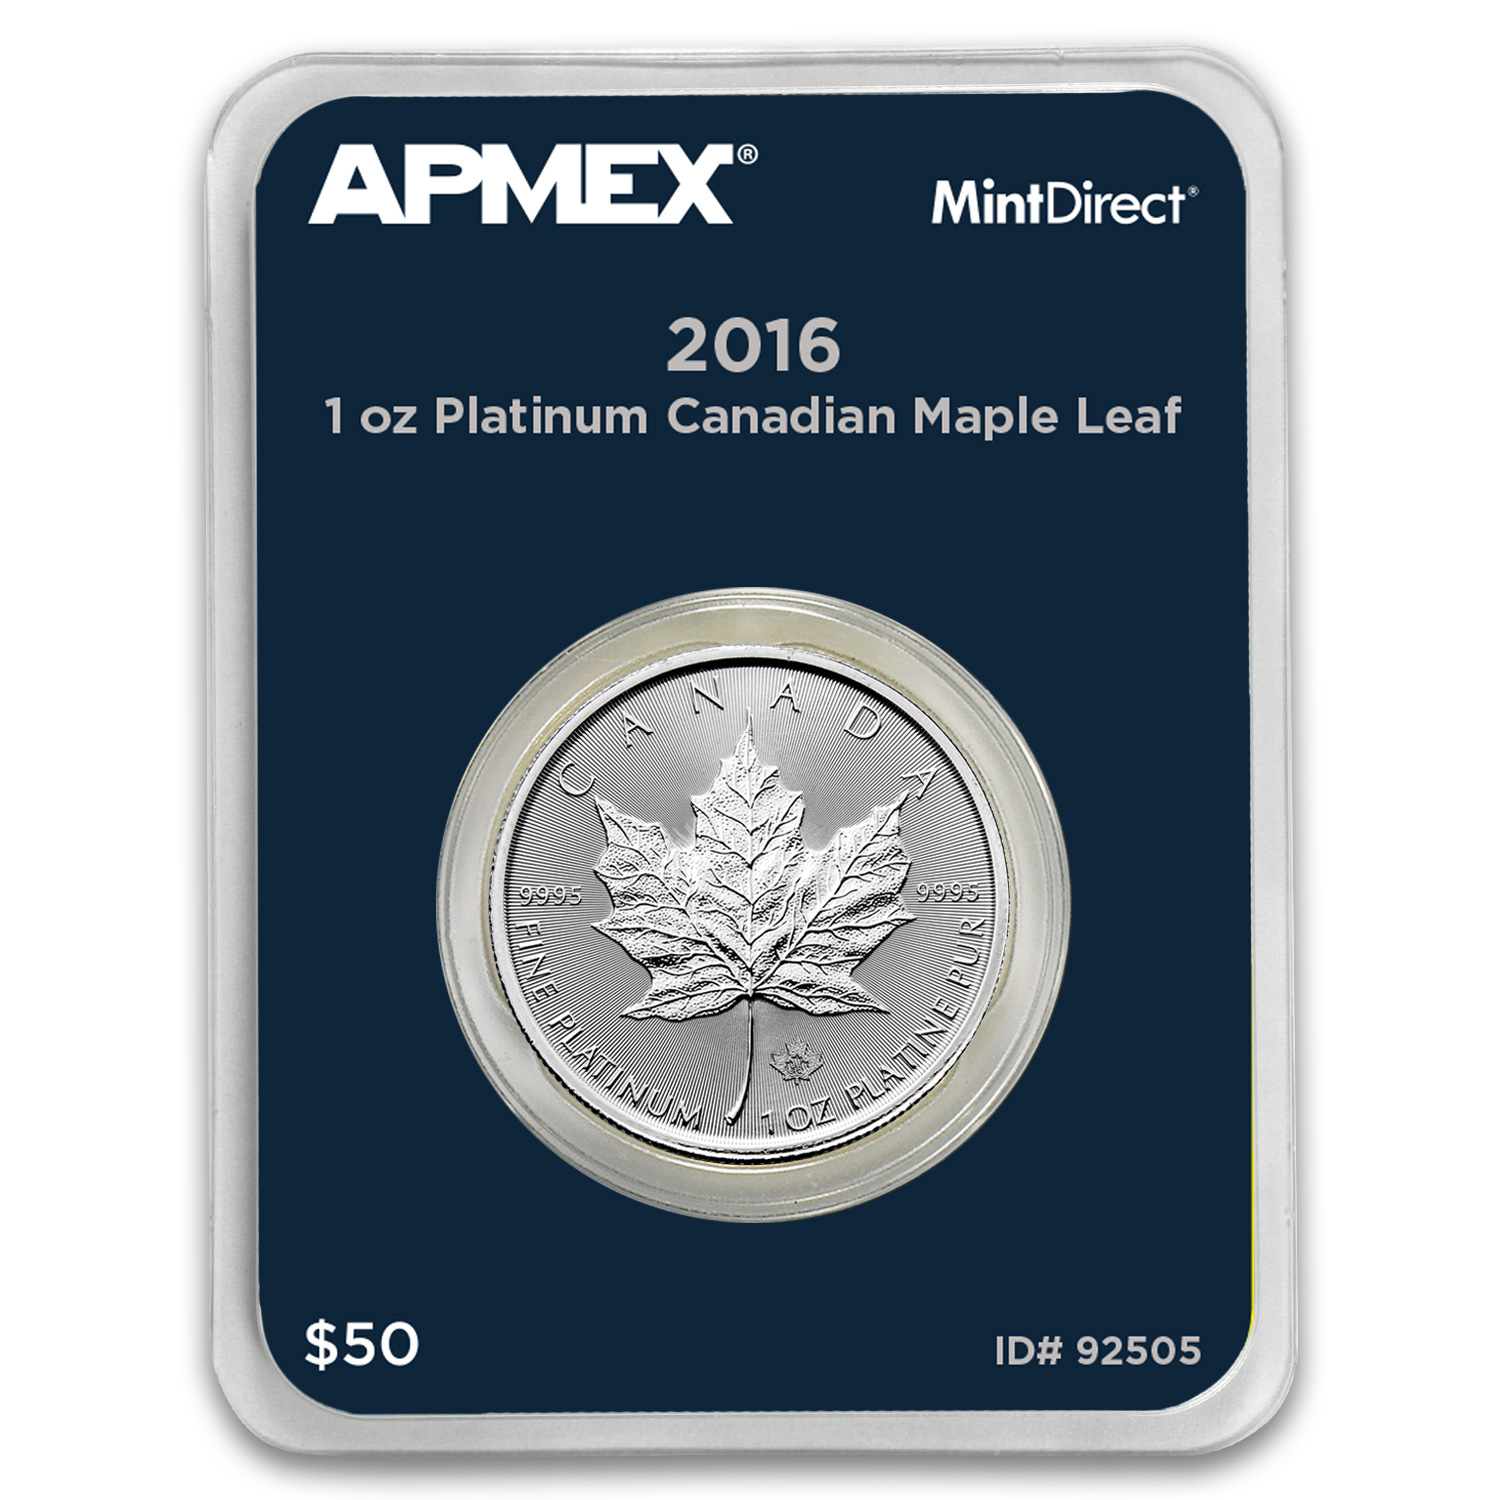 2016 Canada 1 oz Platinum Maple Leaf (MintDirect® Single)